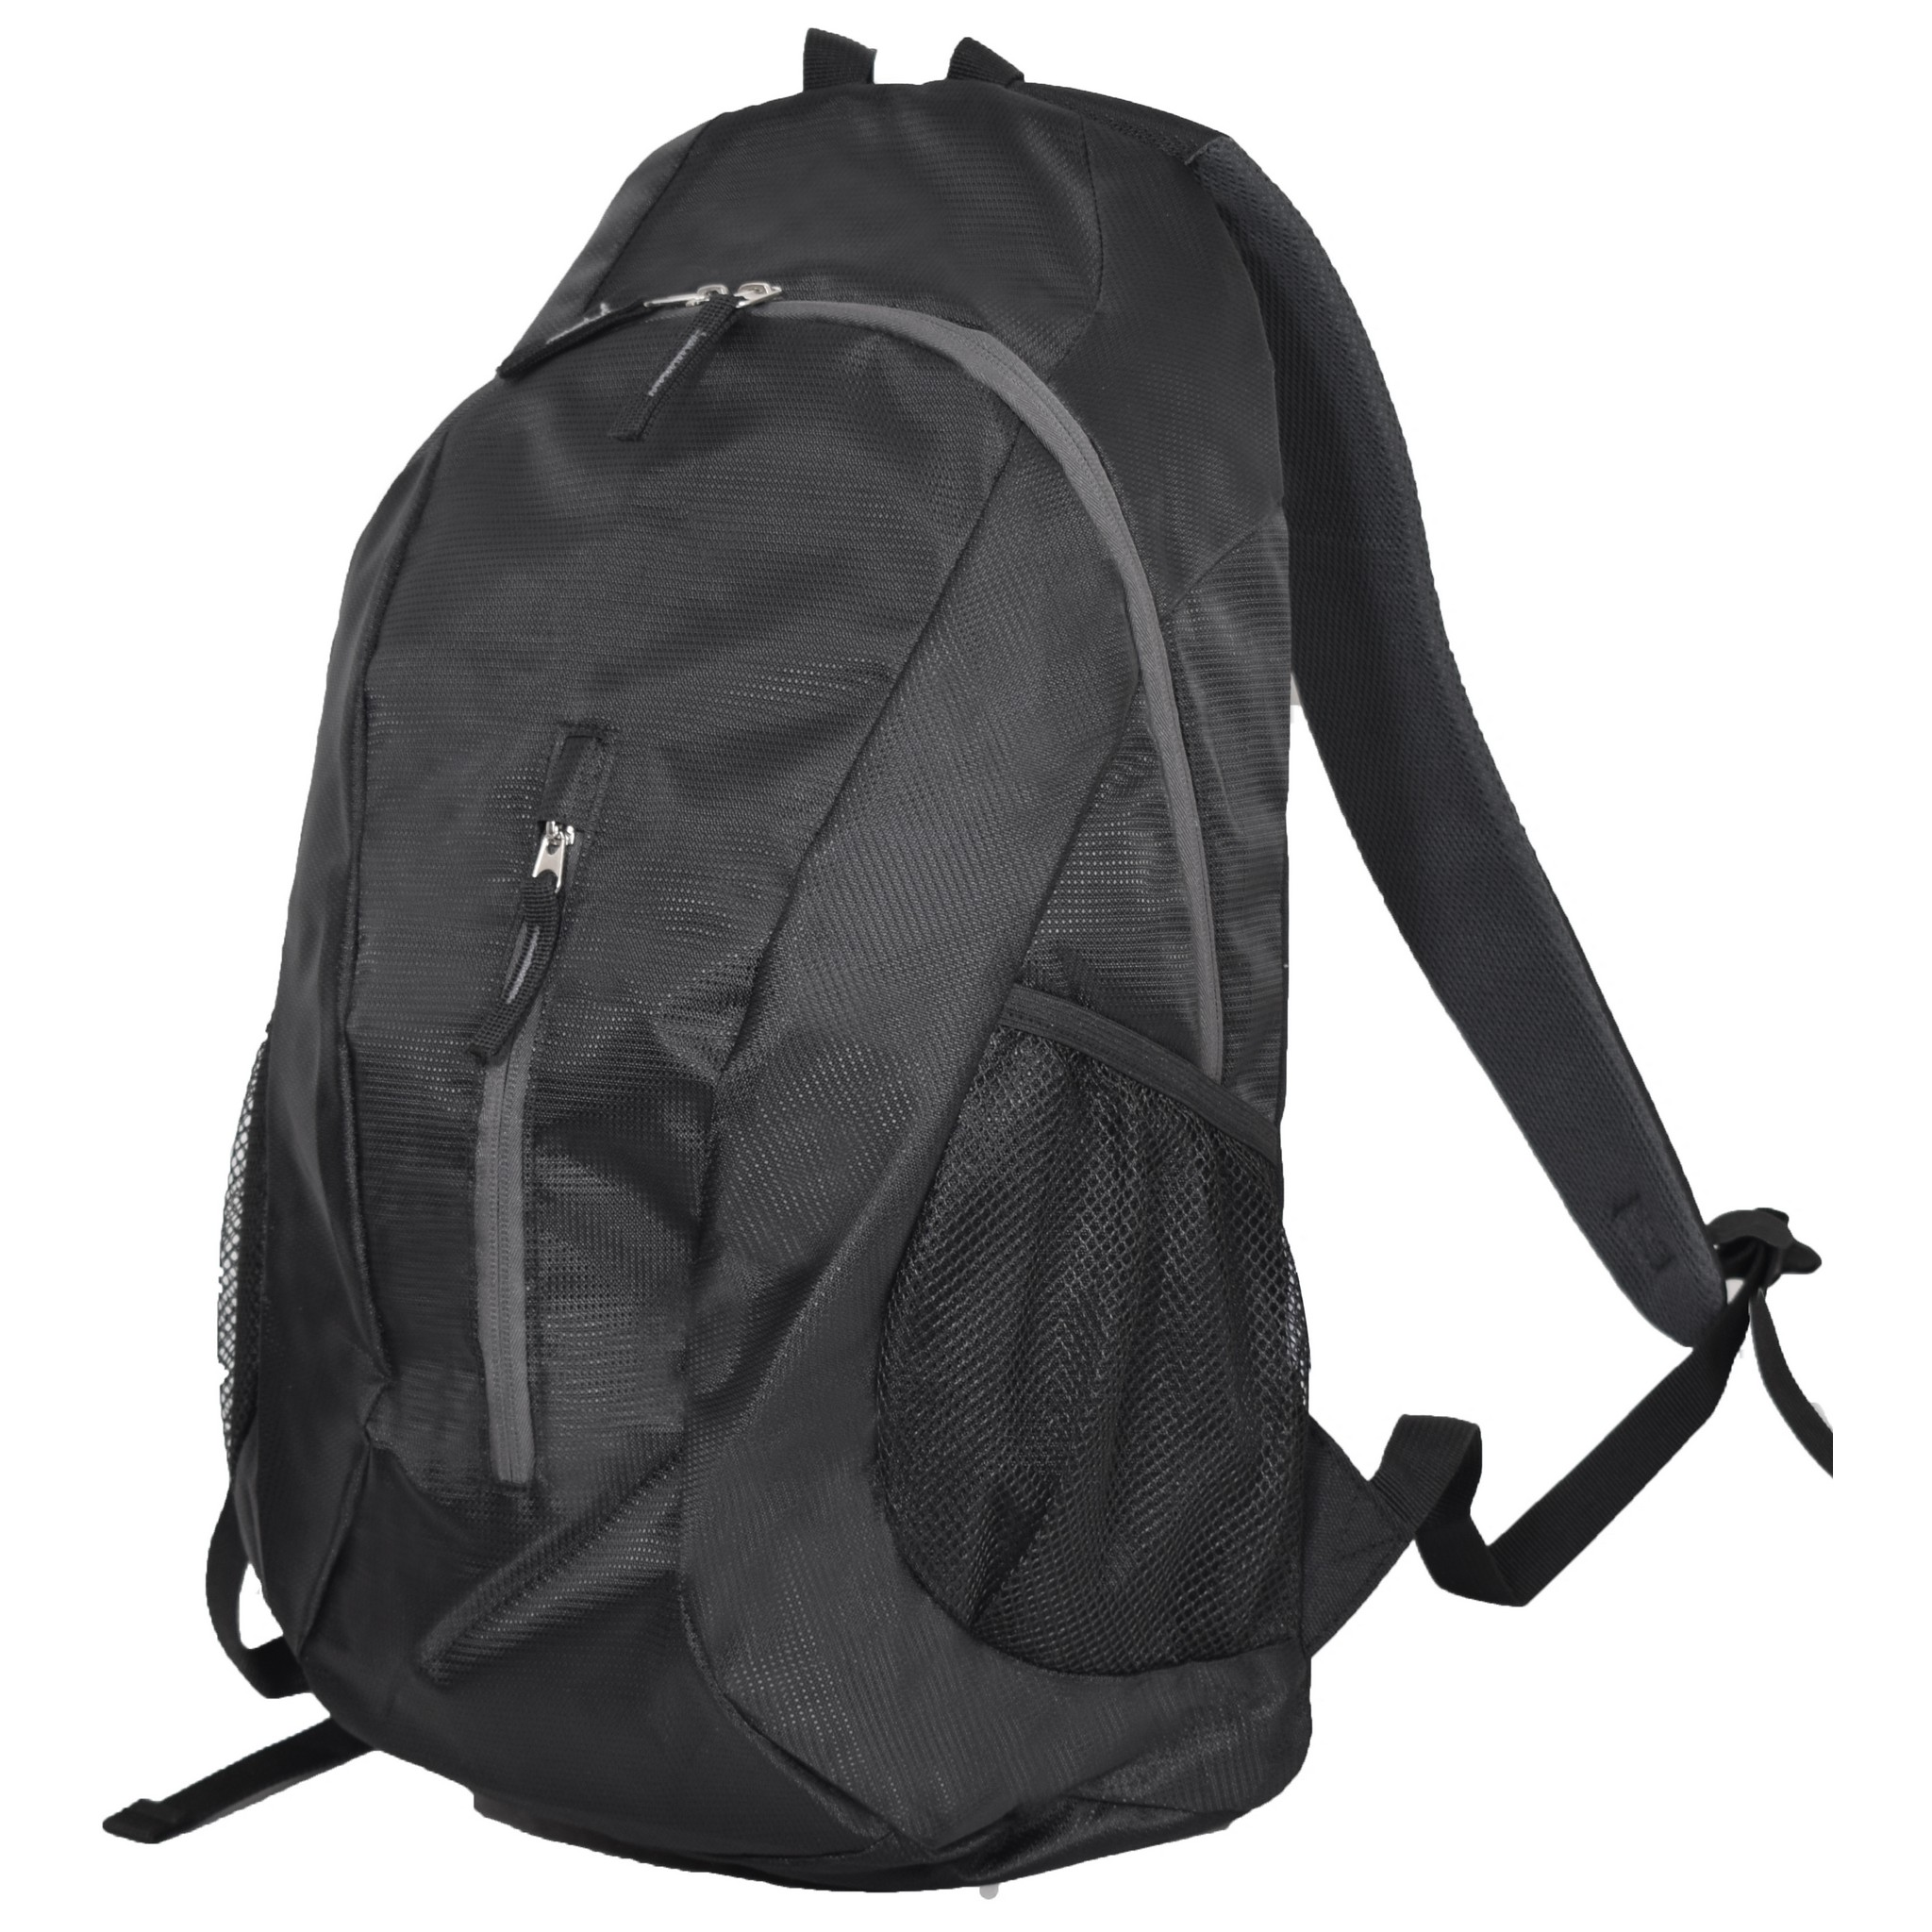 Hikers Backpack - Avail in Black or Blue